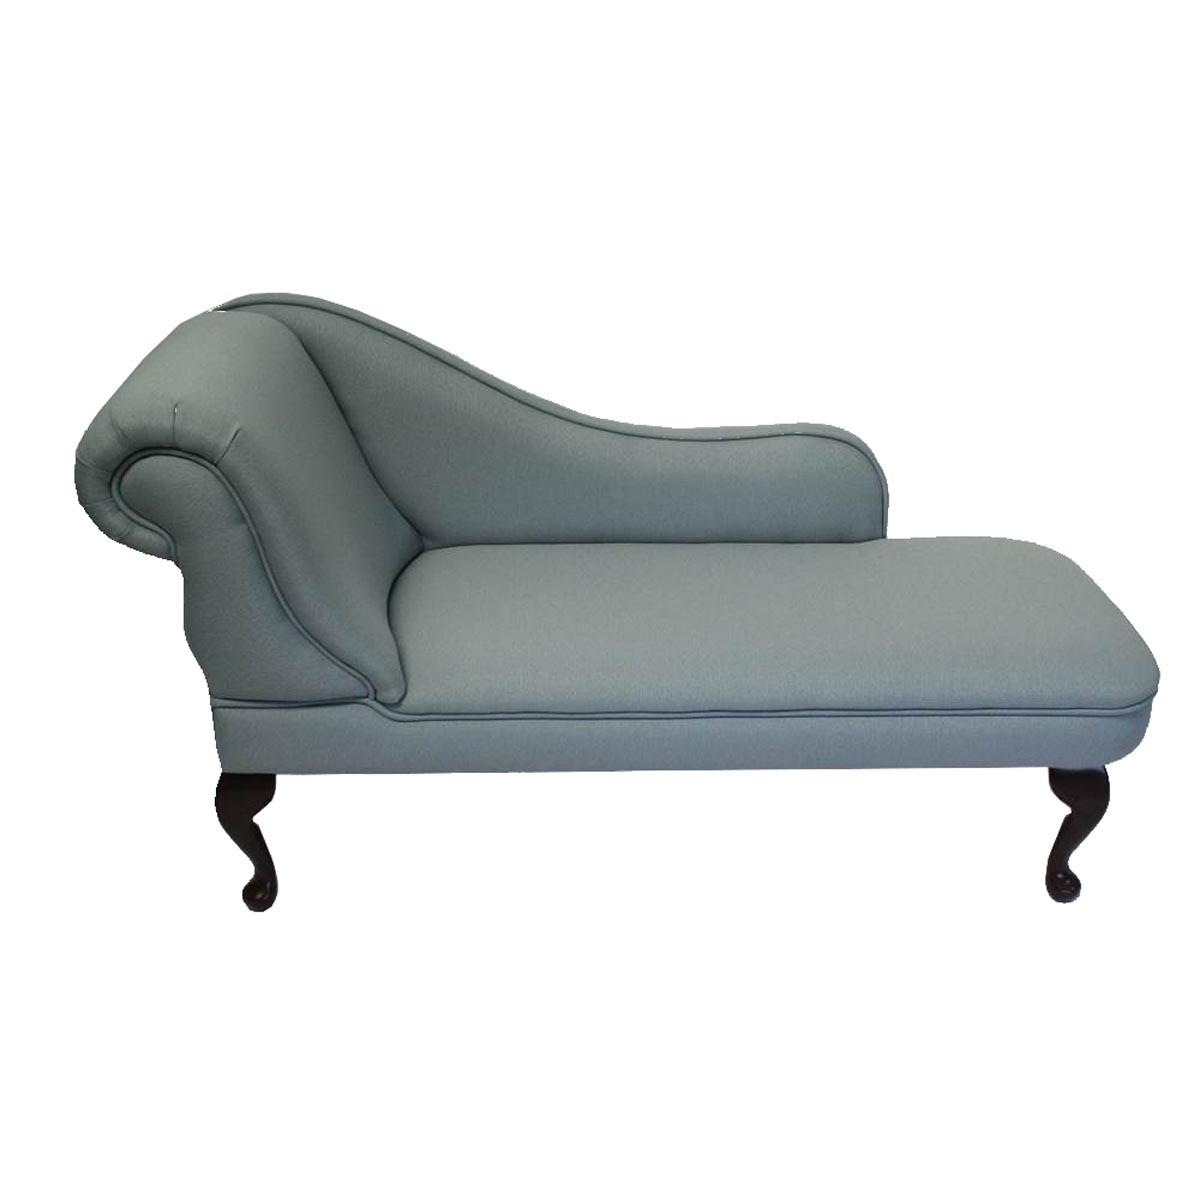 Twain long simply chaise for Chaise longue pliante lafuma